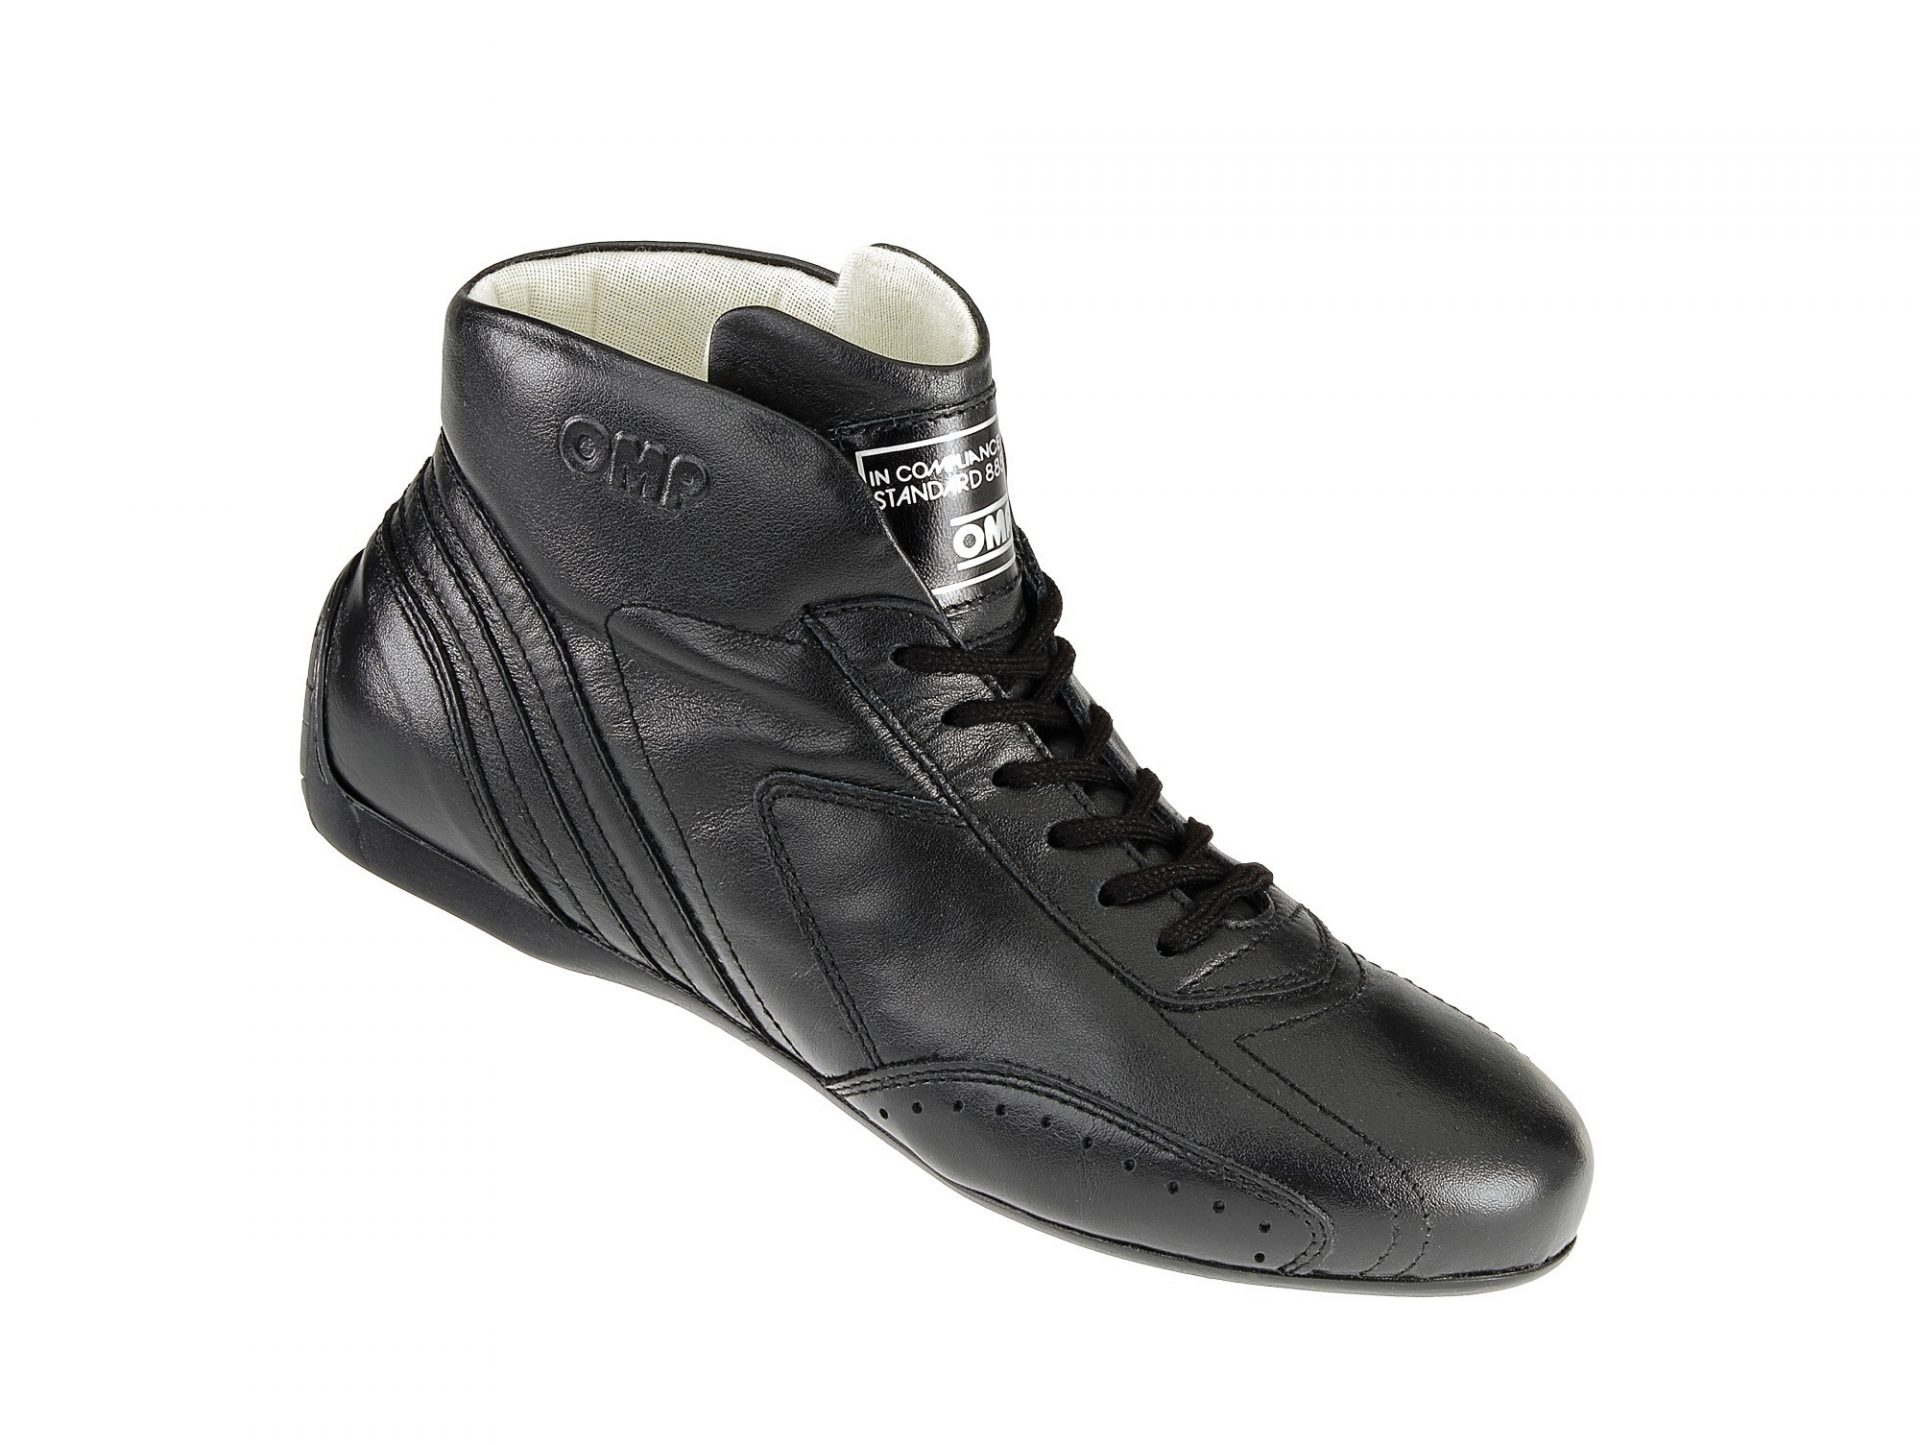 Нов продукт: OMP Carrera Low, FIA Shoes